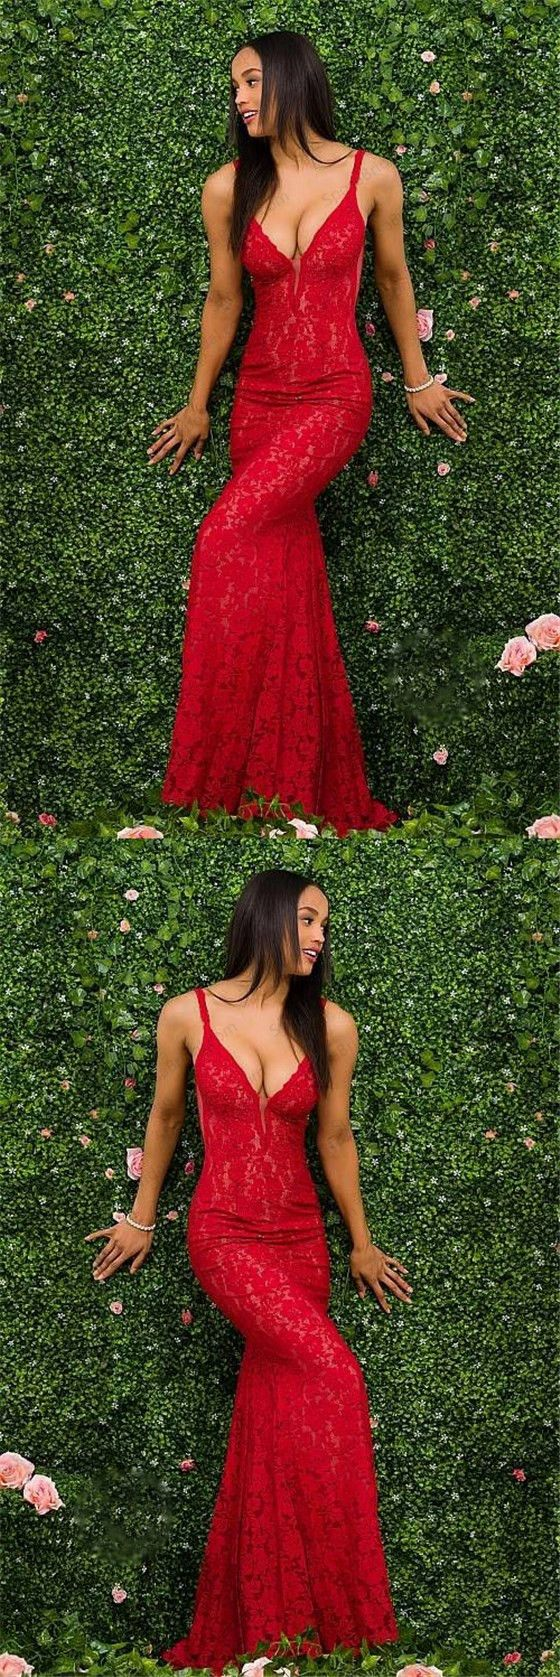 Charming Red Lace Spaghetti Straps Prom Dress, Gorgeous Mermaid Prom Dresses, F0846